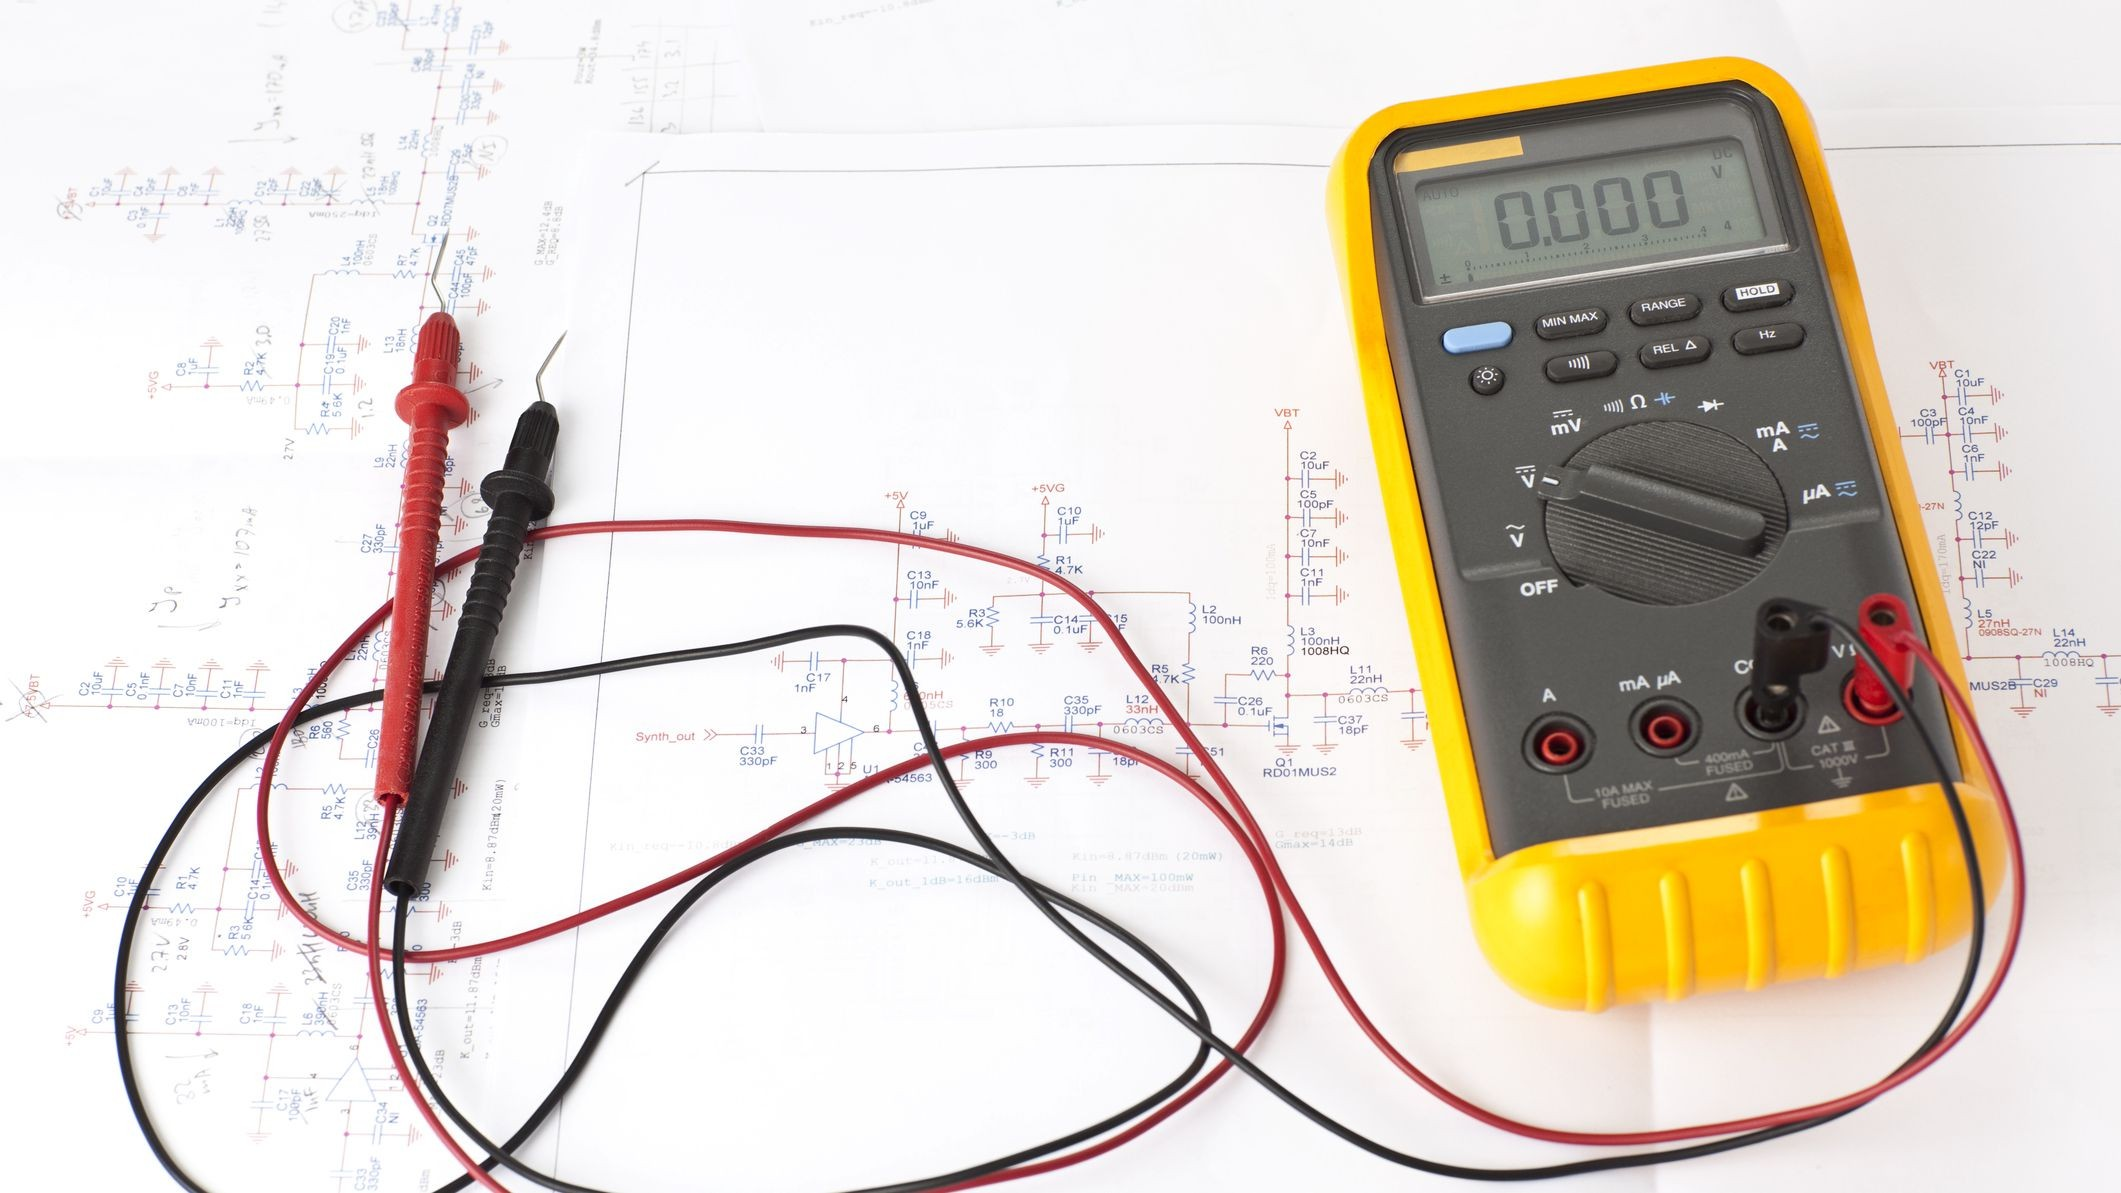 Wiring A touch Lamp Control How to Test for A Plete Circuit In A Light Bulb Holder Of Wiring A touch Lamp Control